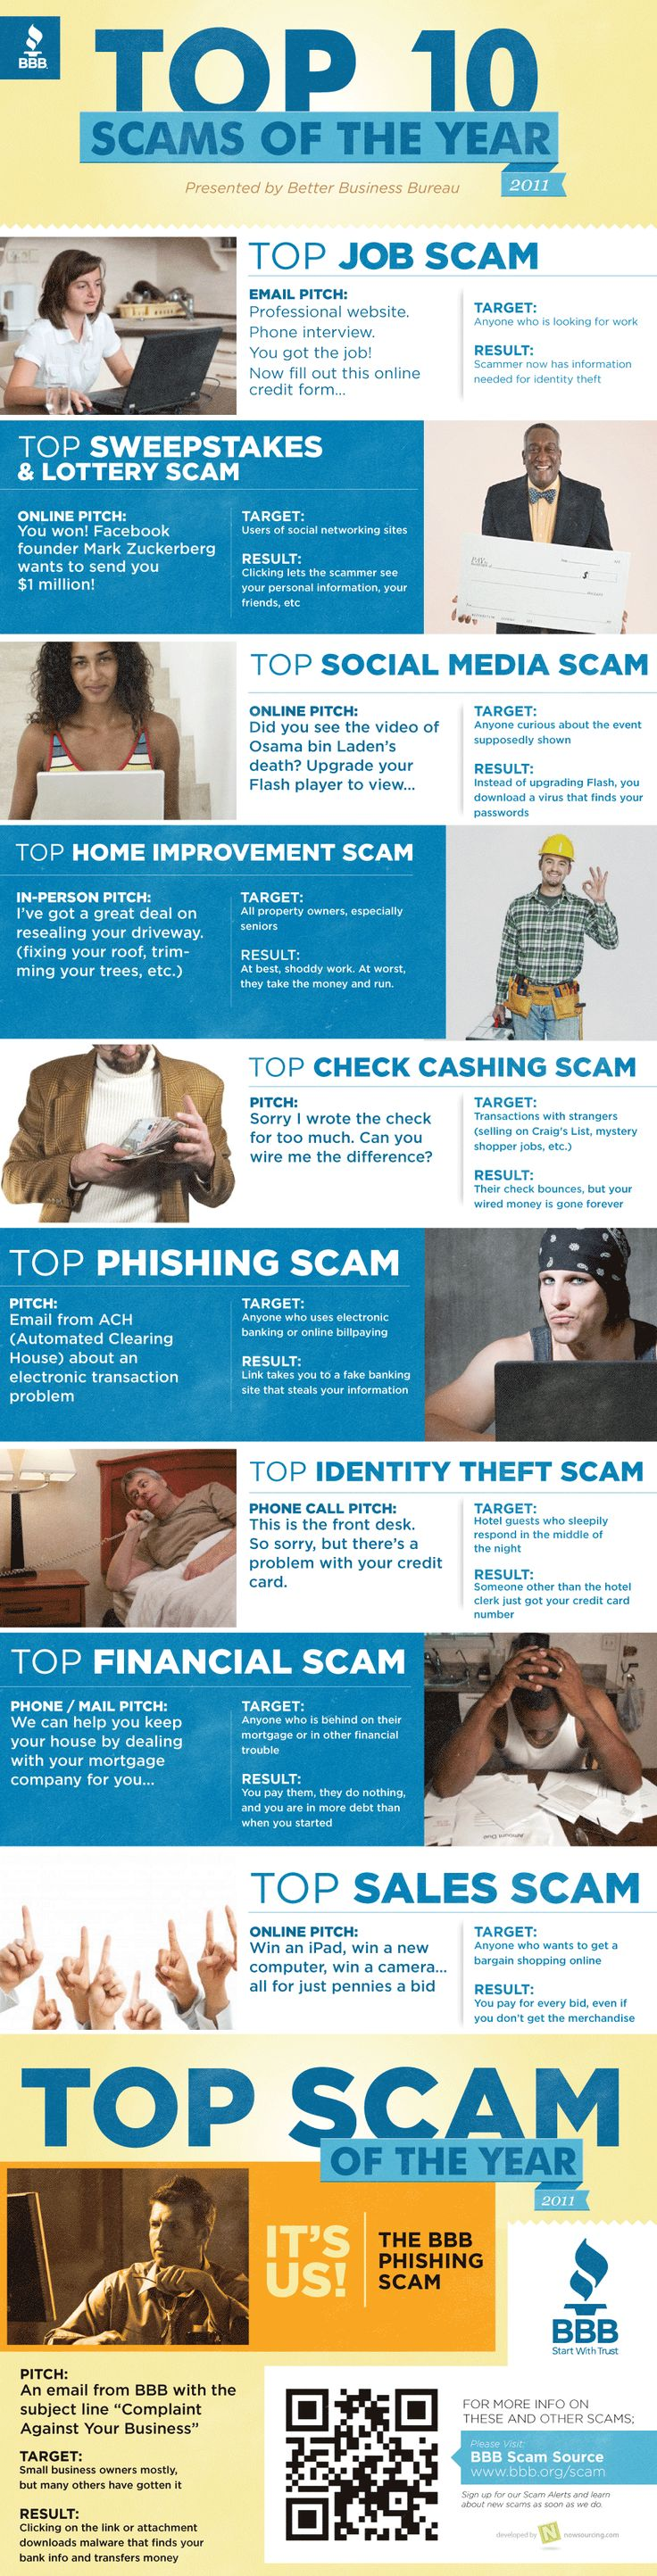 """Internet Scams... says Mr. Spock: """"I will never understand humans.""""...... me probably never those giving their bank infos after getting a secretive email from Nigeria......    Top 10 scams of the year by Better Business Bureau #infographic"""